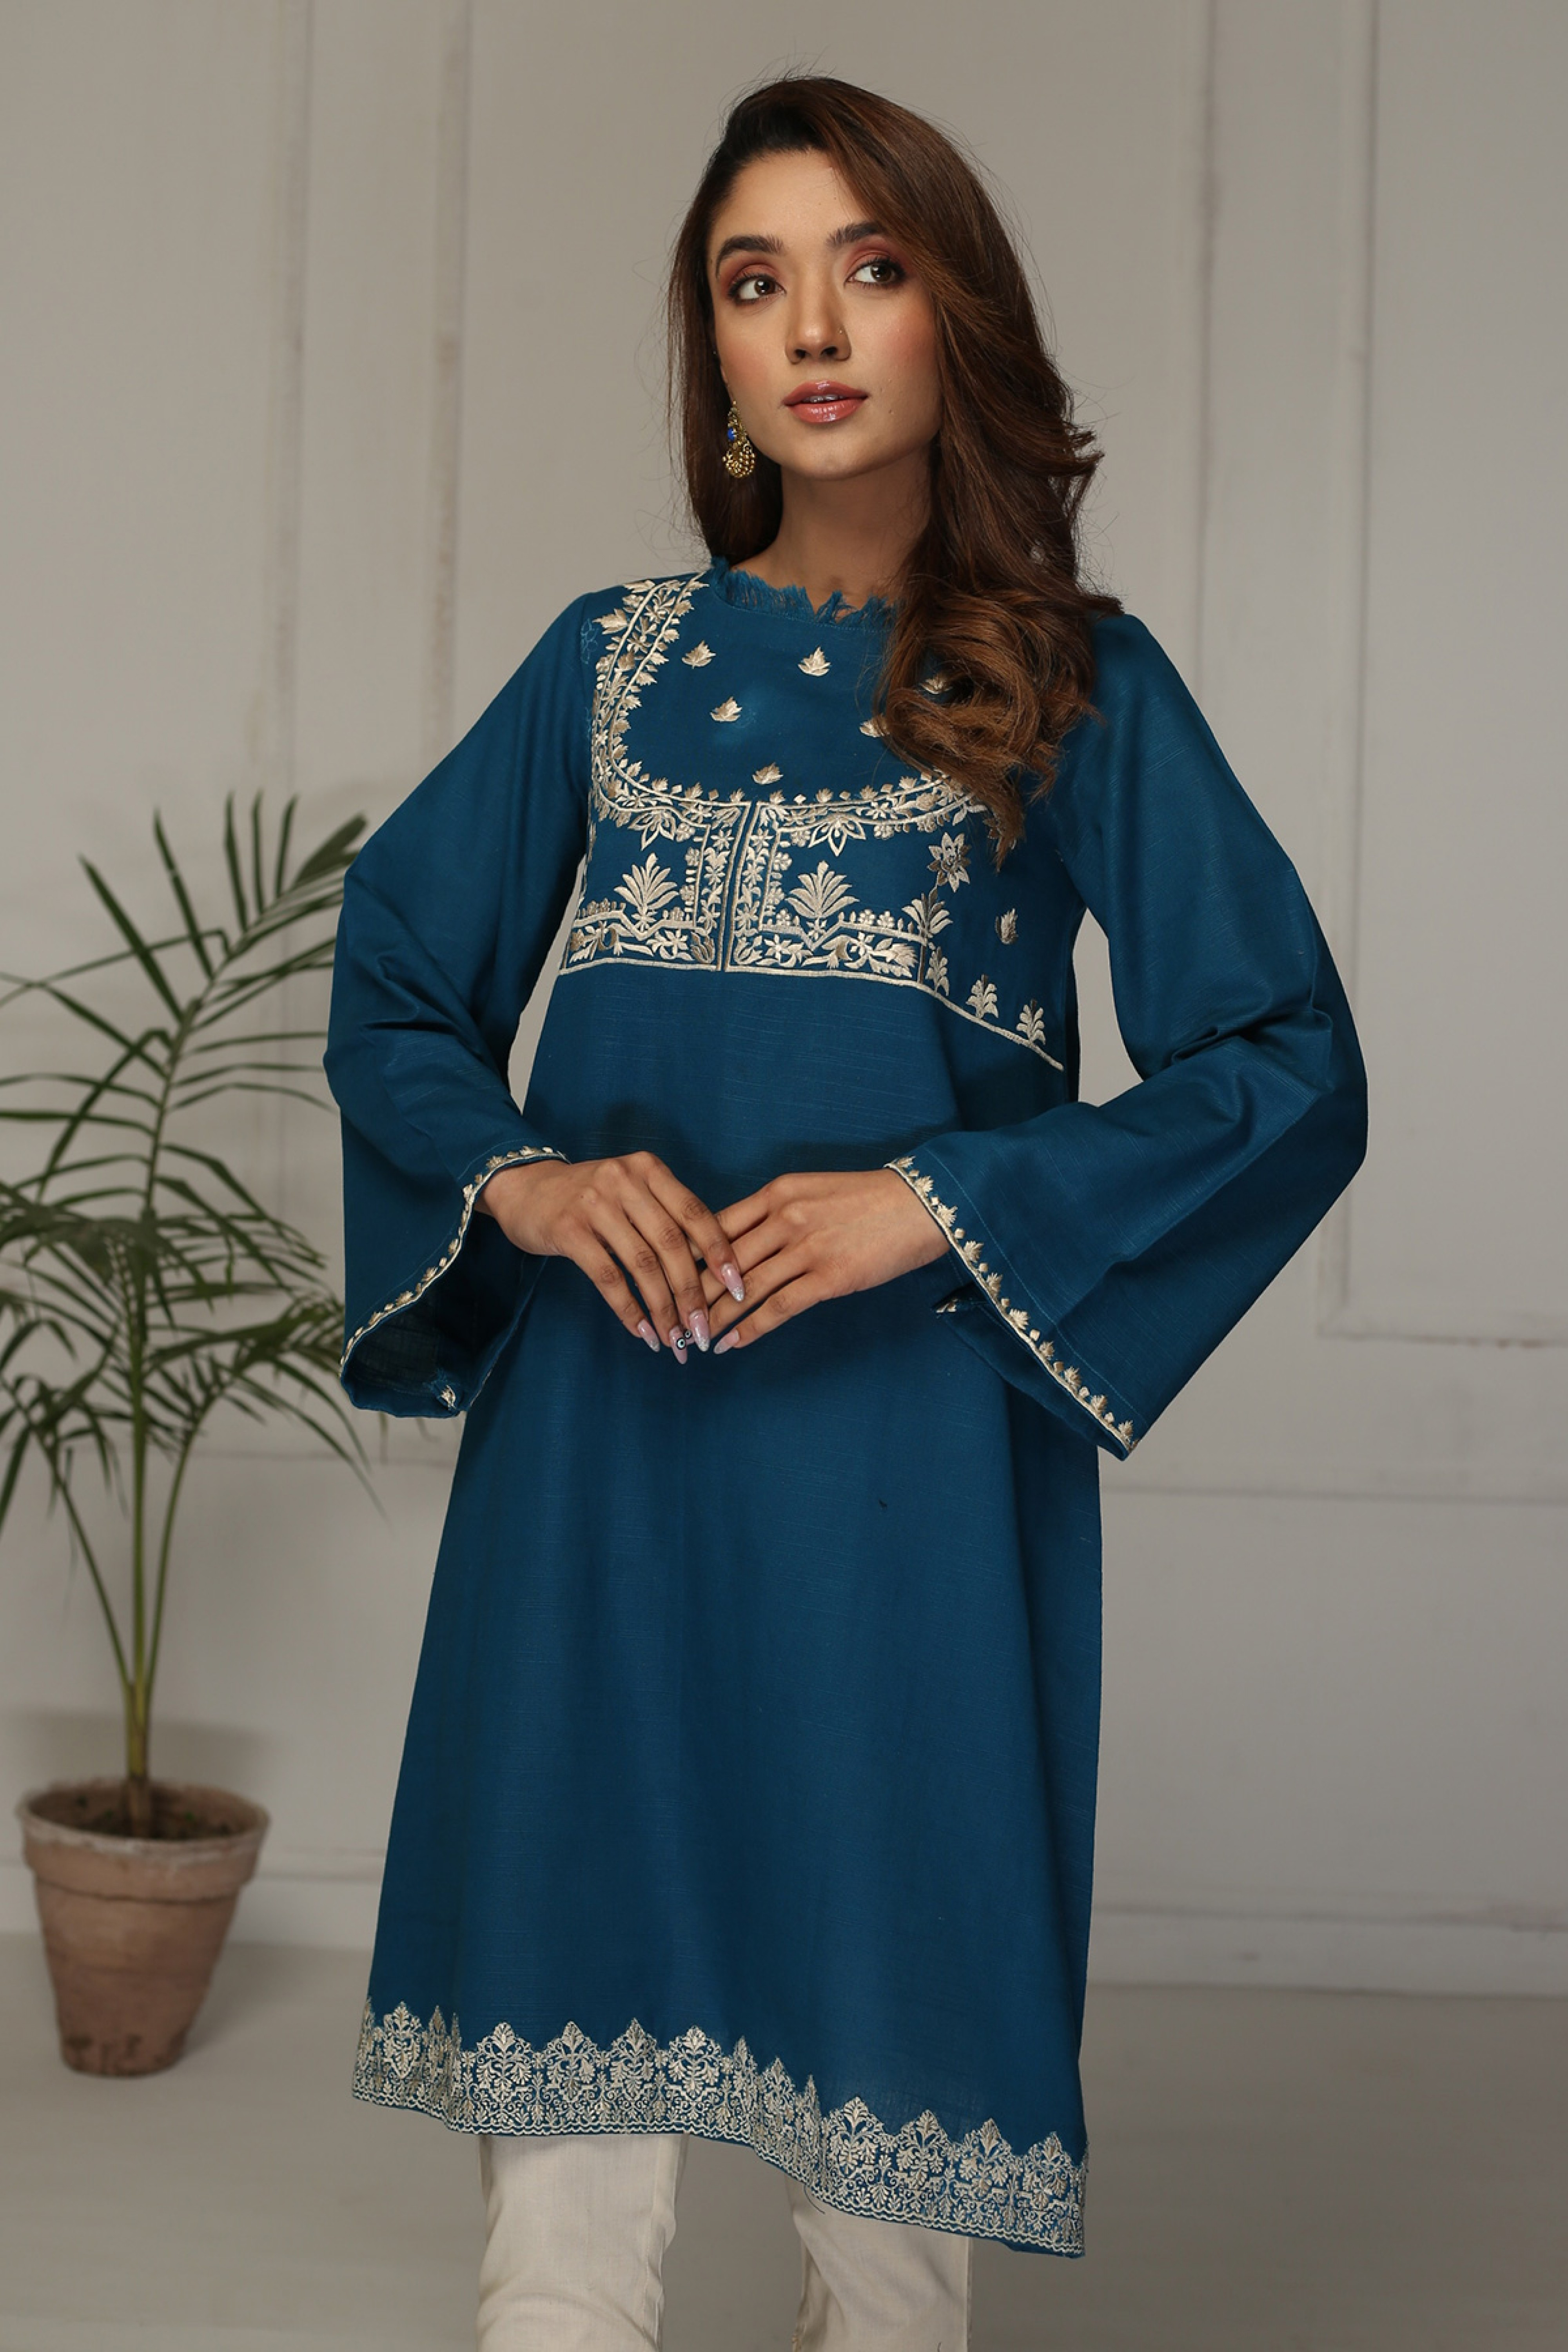 SNOW DROP(Embroidered Frock)